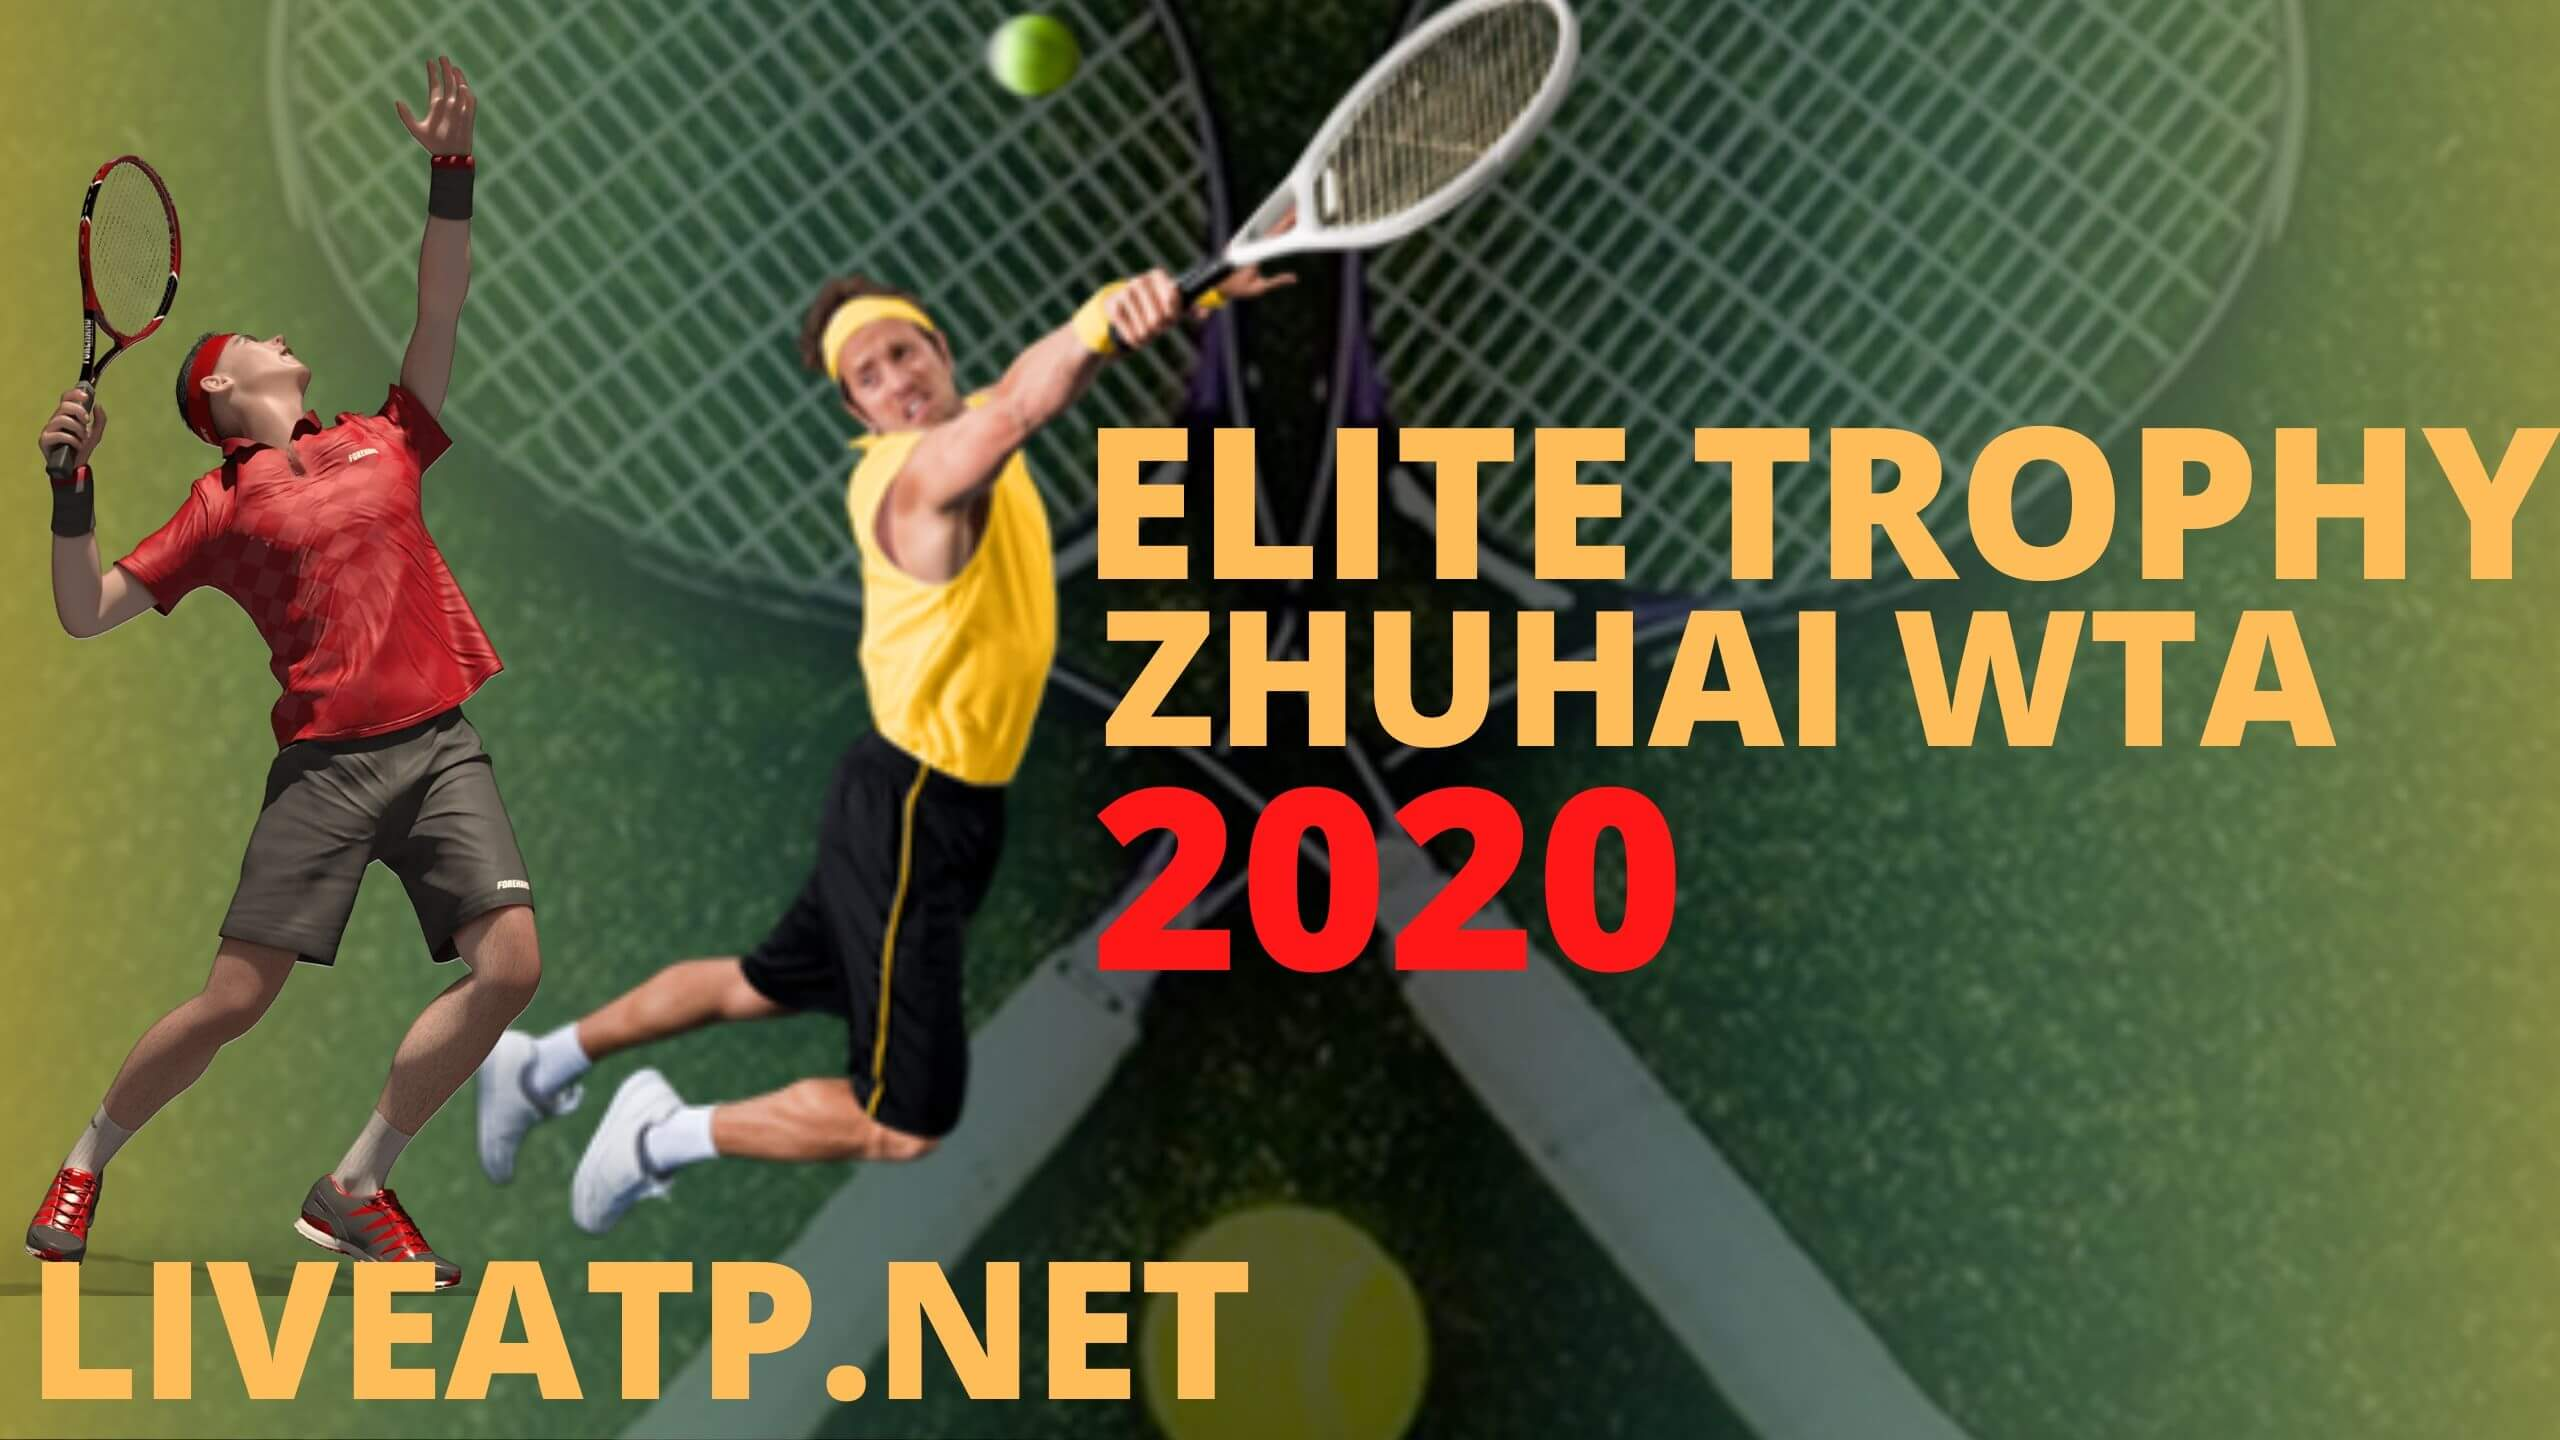 WTA Elite Trophy Zhuhai Live Stream 2020 | Day 4